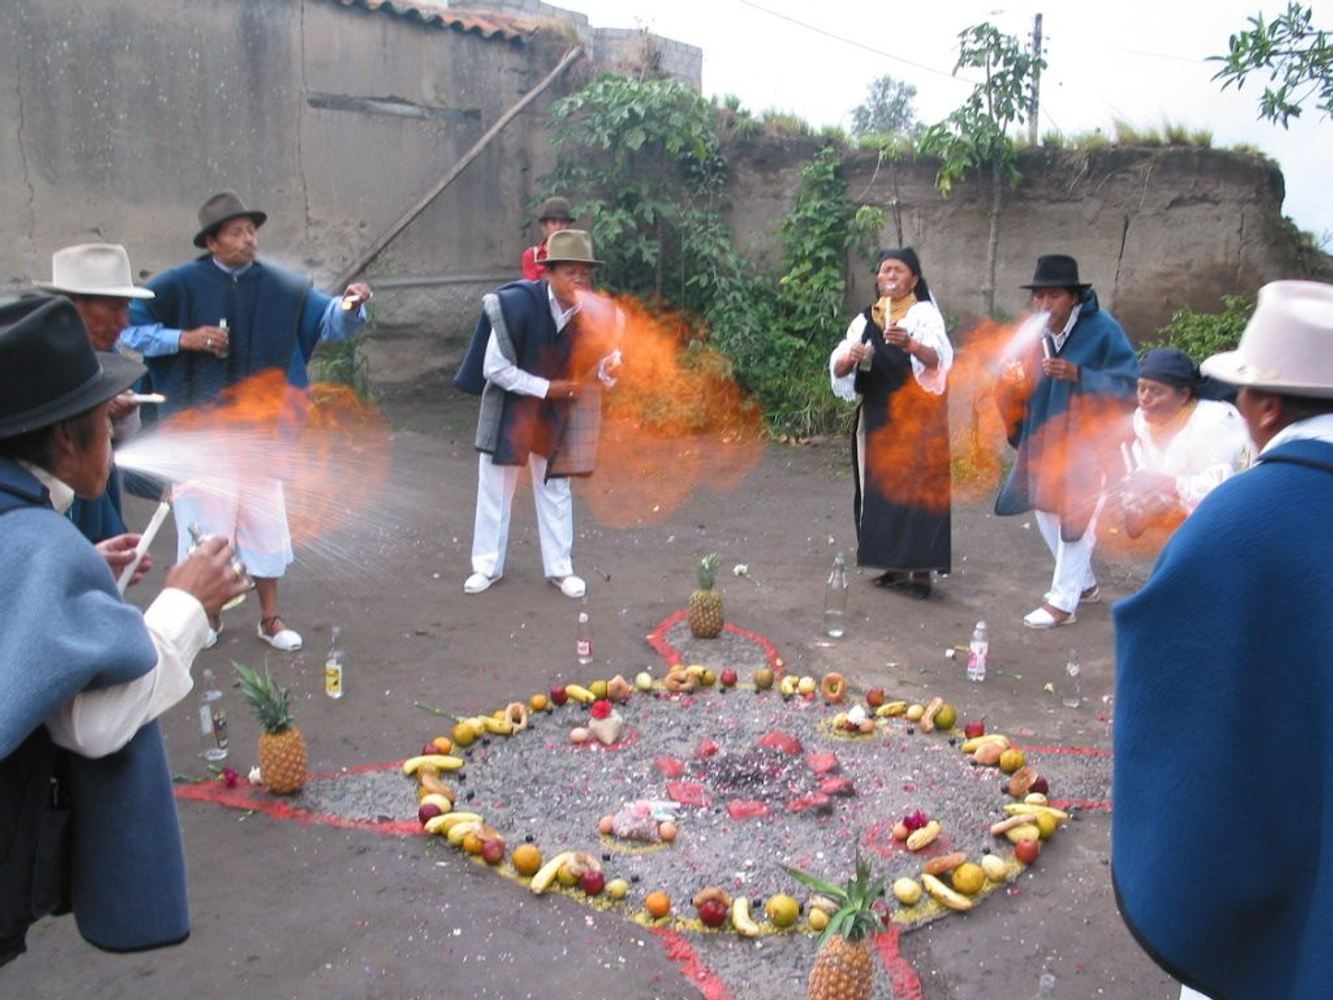 New Years in Ecuador: Indigenous and Environmental Justice